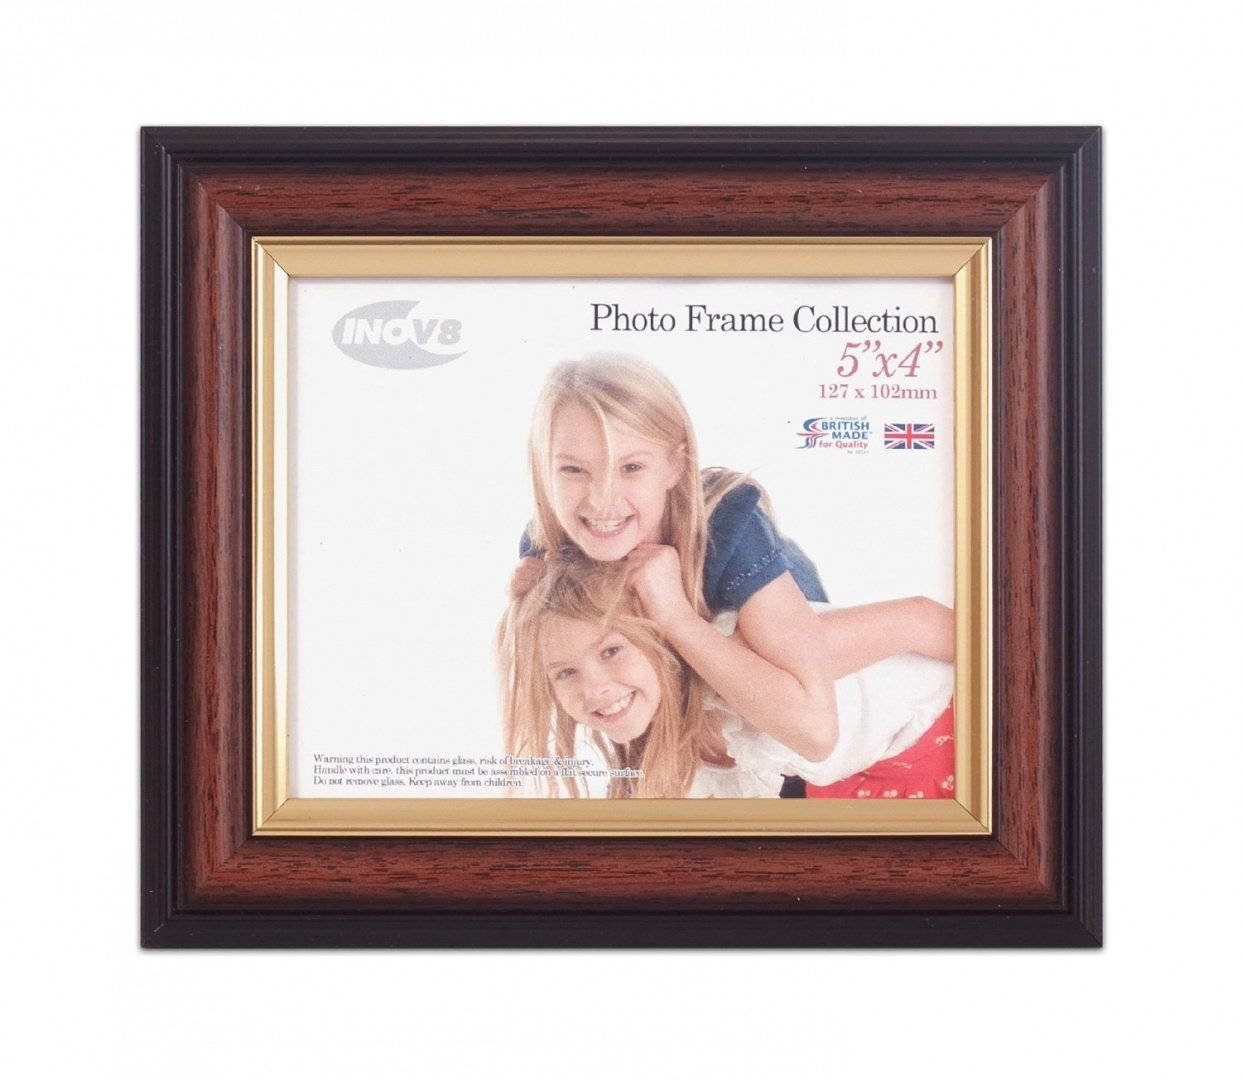 Inov8-British-Made-Traditional-Picture-Photo-Frame-25cm-x-20cm-Teak-580-Ship